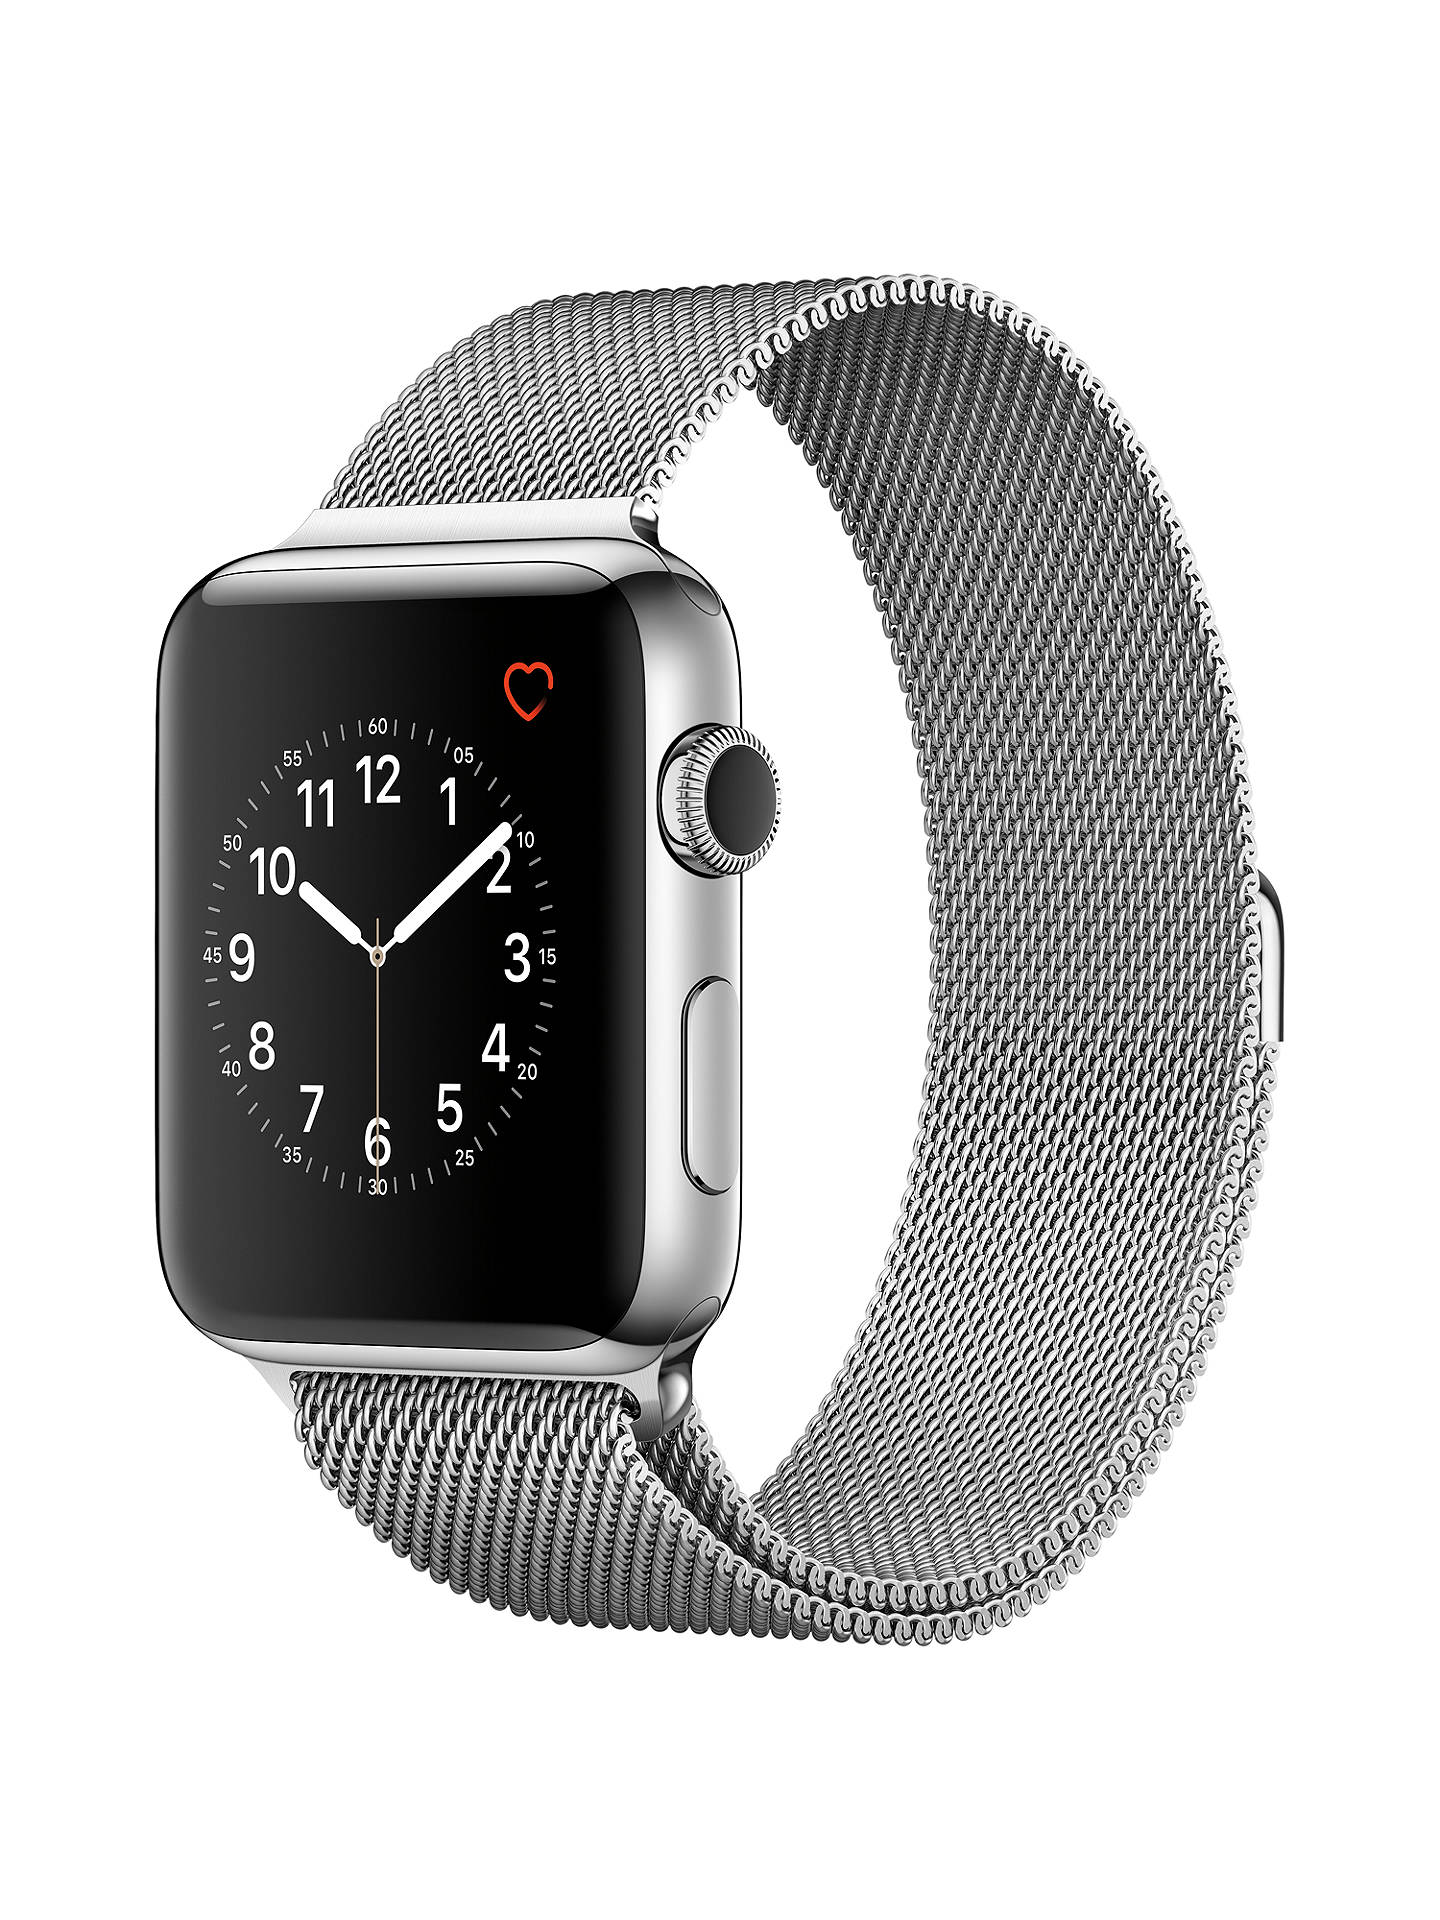 42mm stainless steel case